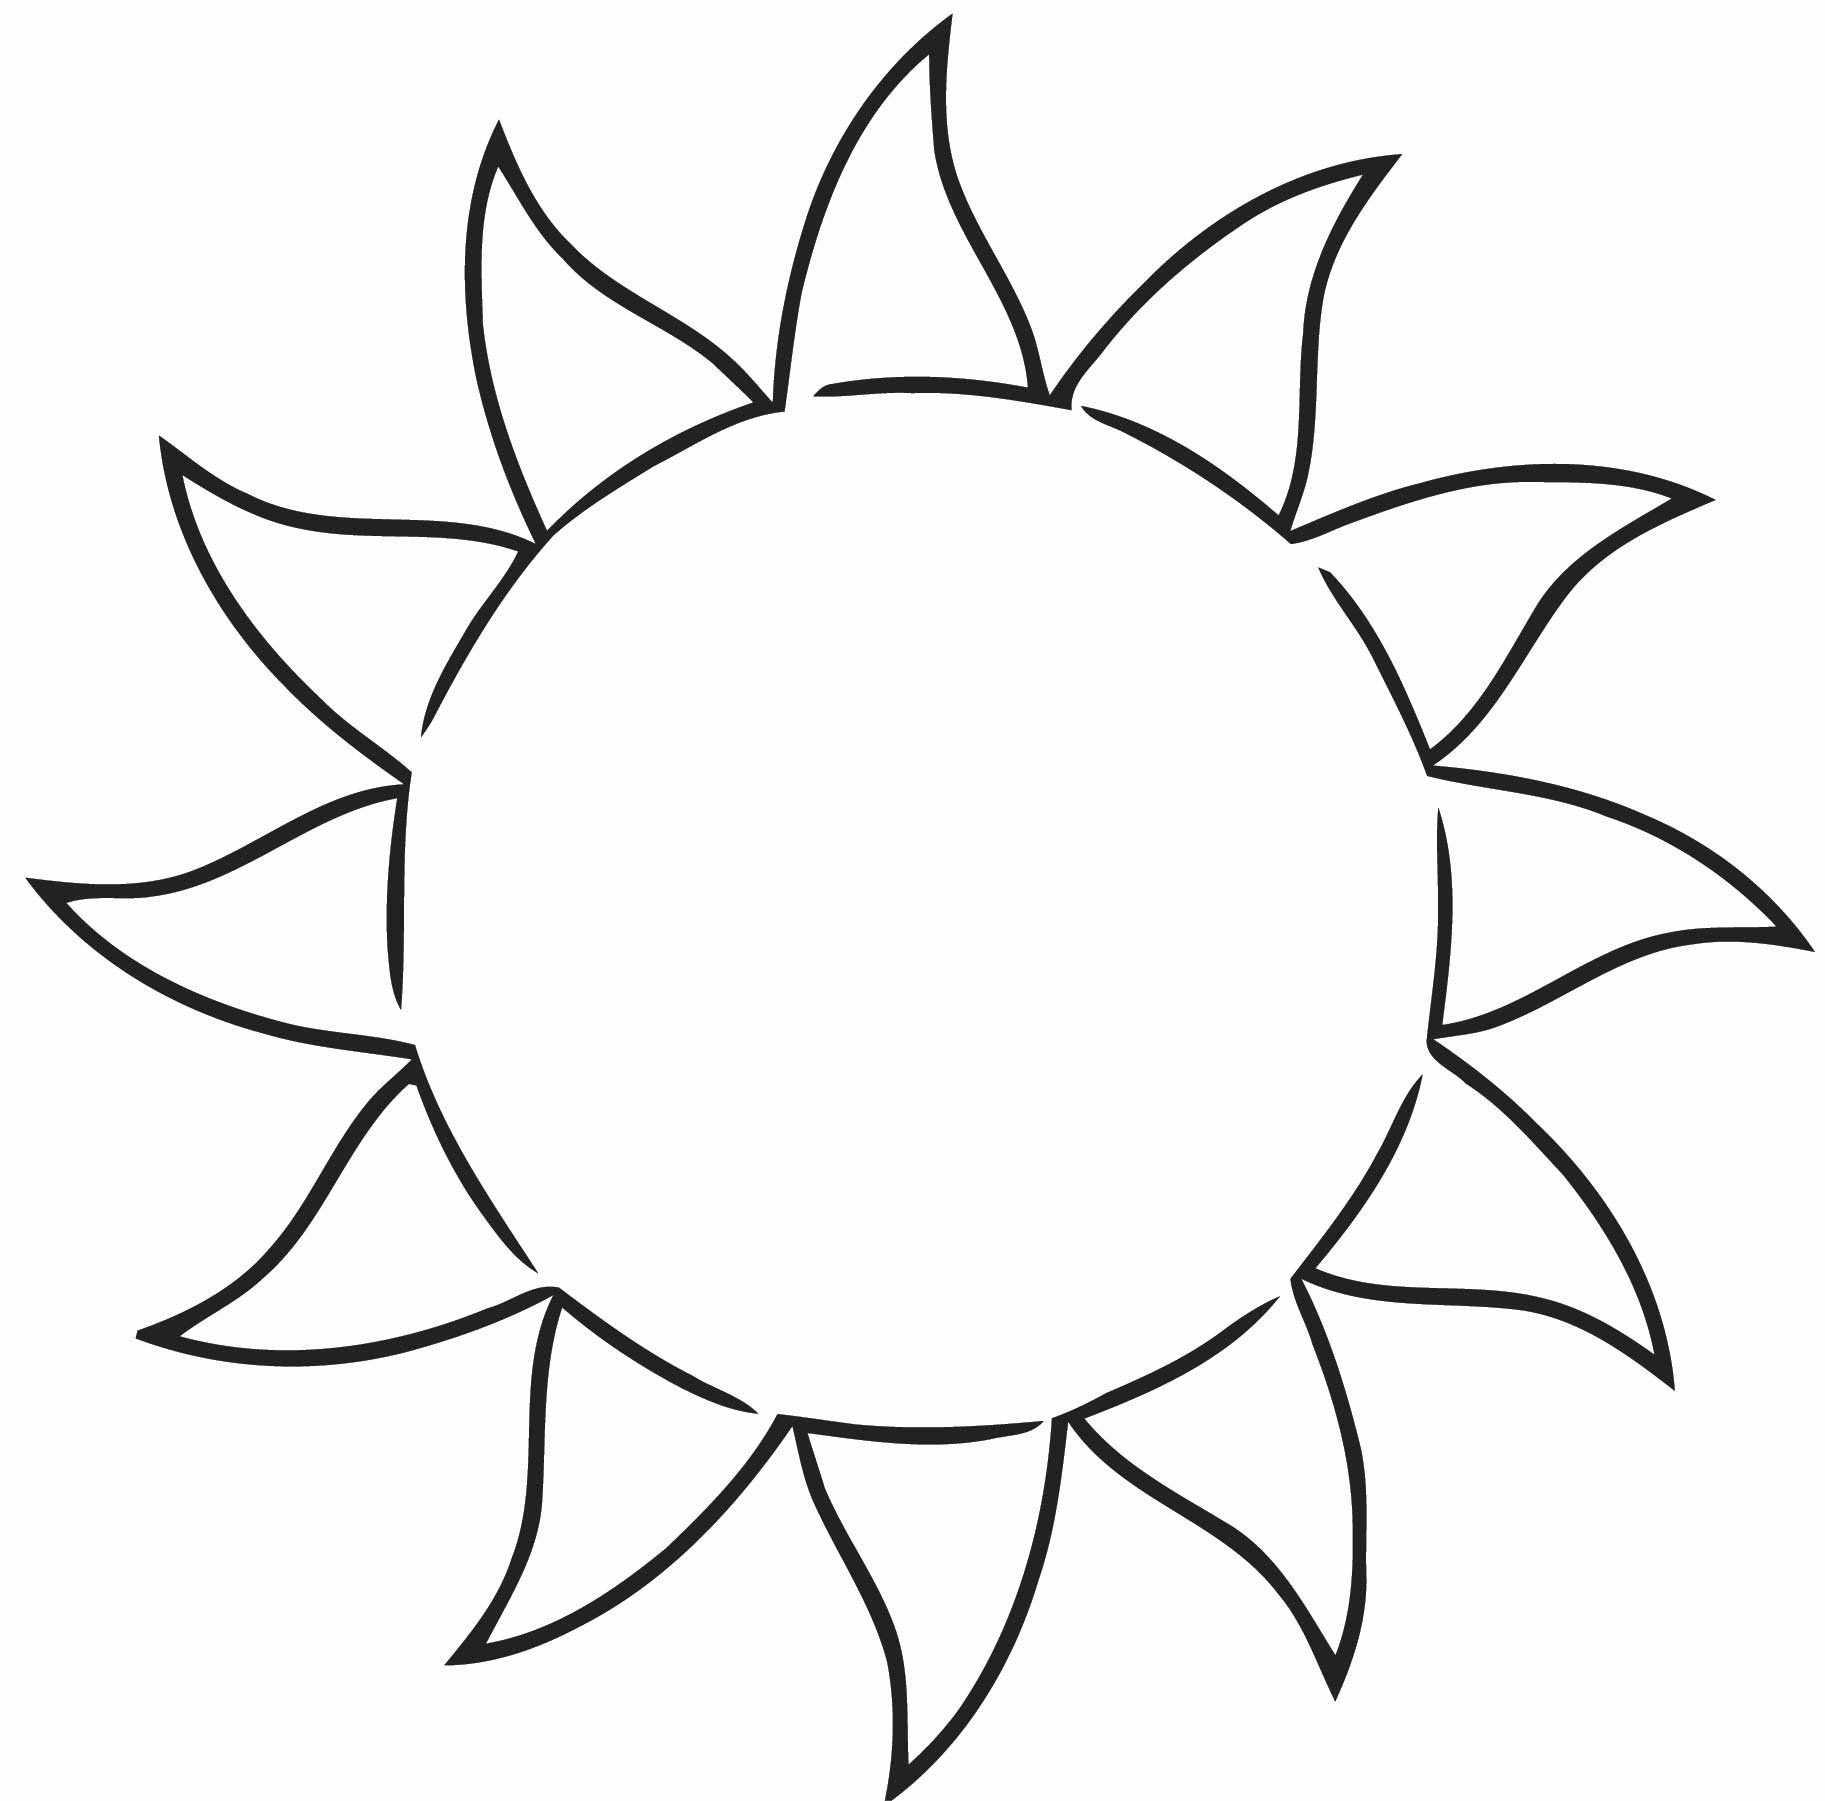 Sun Coloring Page Printable Fresh All Free Download Free Sun Clip A Free Printable Rt Free Printable Coloring Pages Sun Coloring Page Sun Coloring Pages